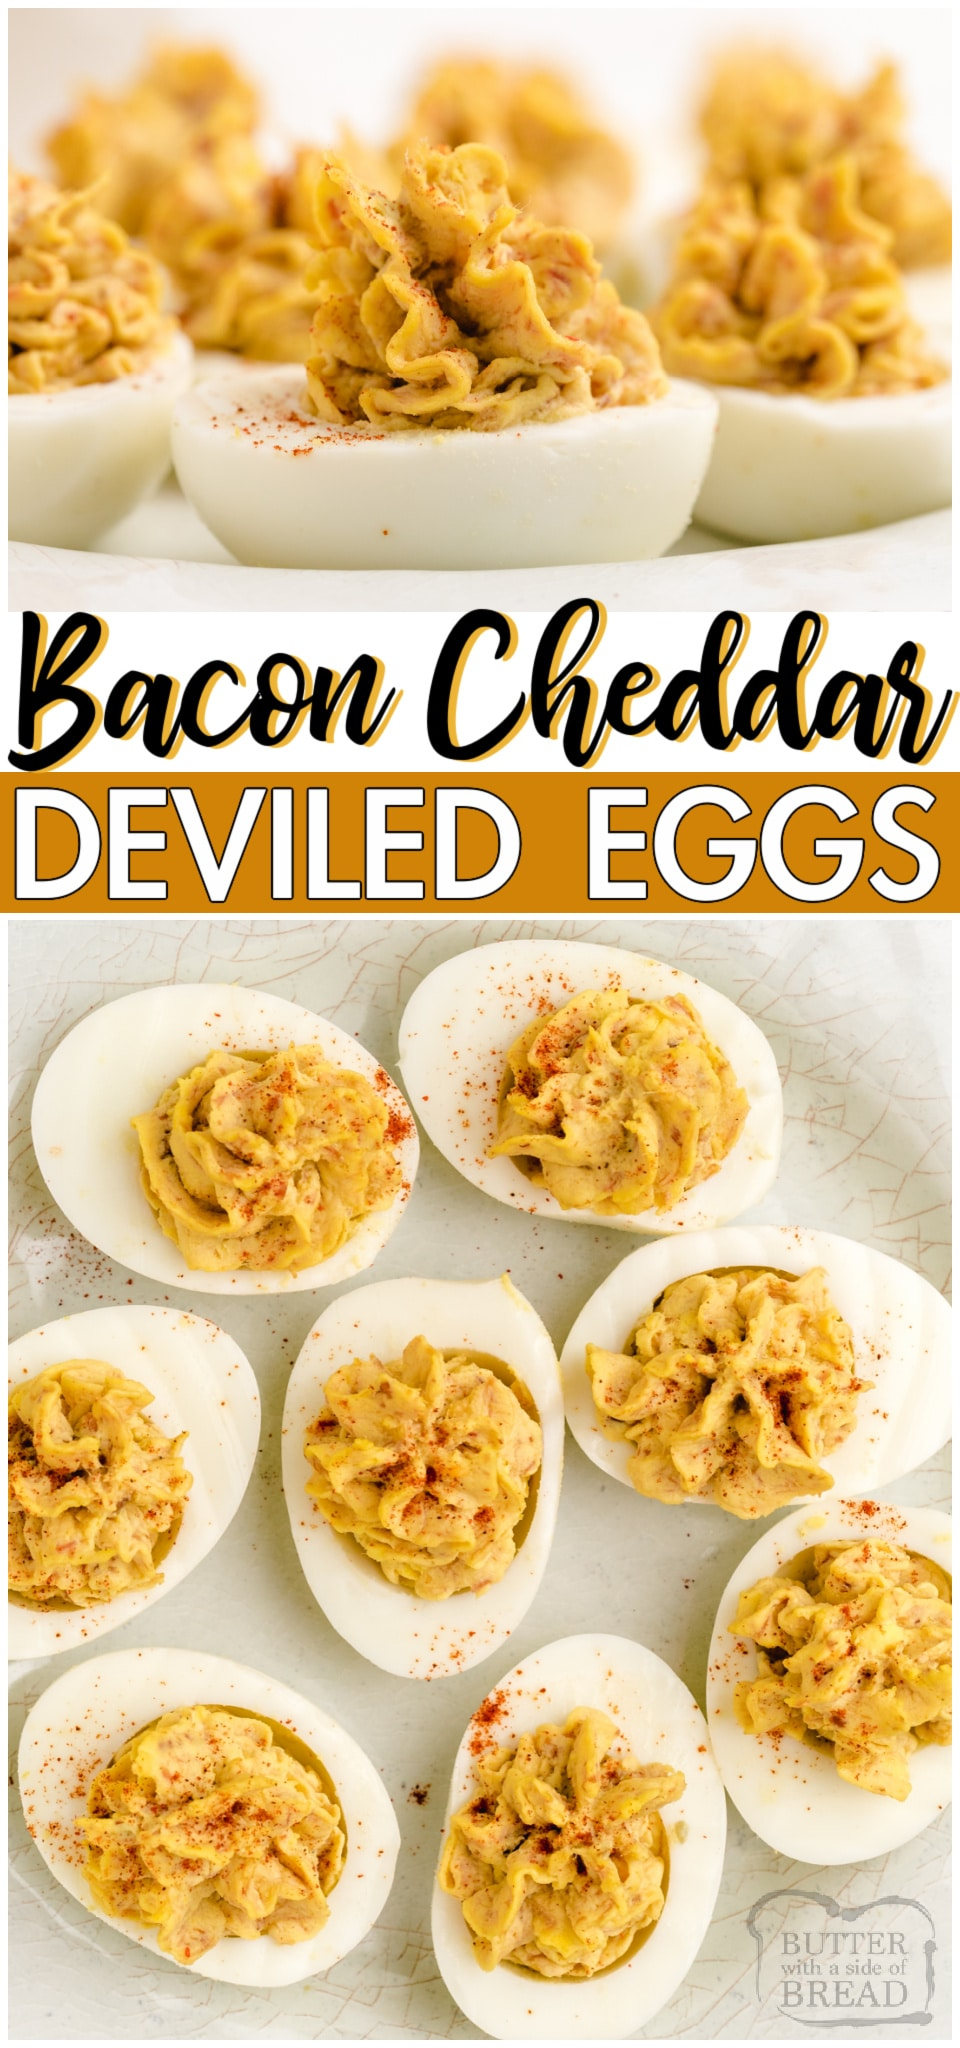 Bacon cheddar deviled eggs is a delicious twist on a classic! Traditional Deviled Eggs recipe with the addition of bacon and cheddar cheese for a fantastic savory appetizer. #eggs #appetizer #deviled #bacon #cheddar #cheese #easyrecipe from BUTTER WITH A SIDE OF BREAD